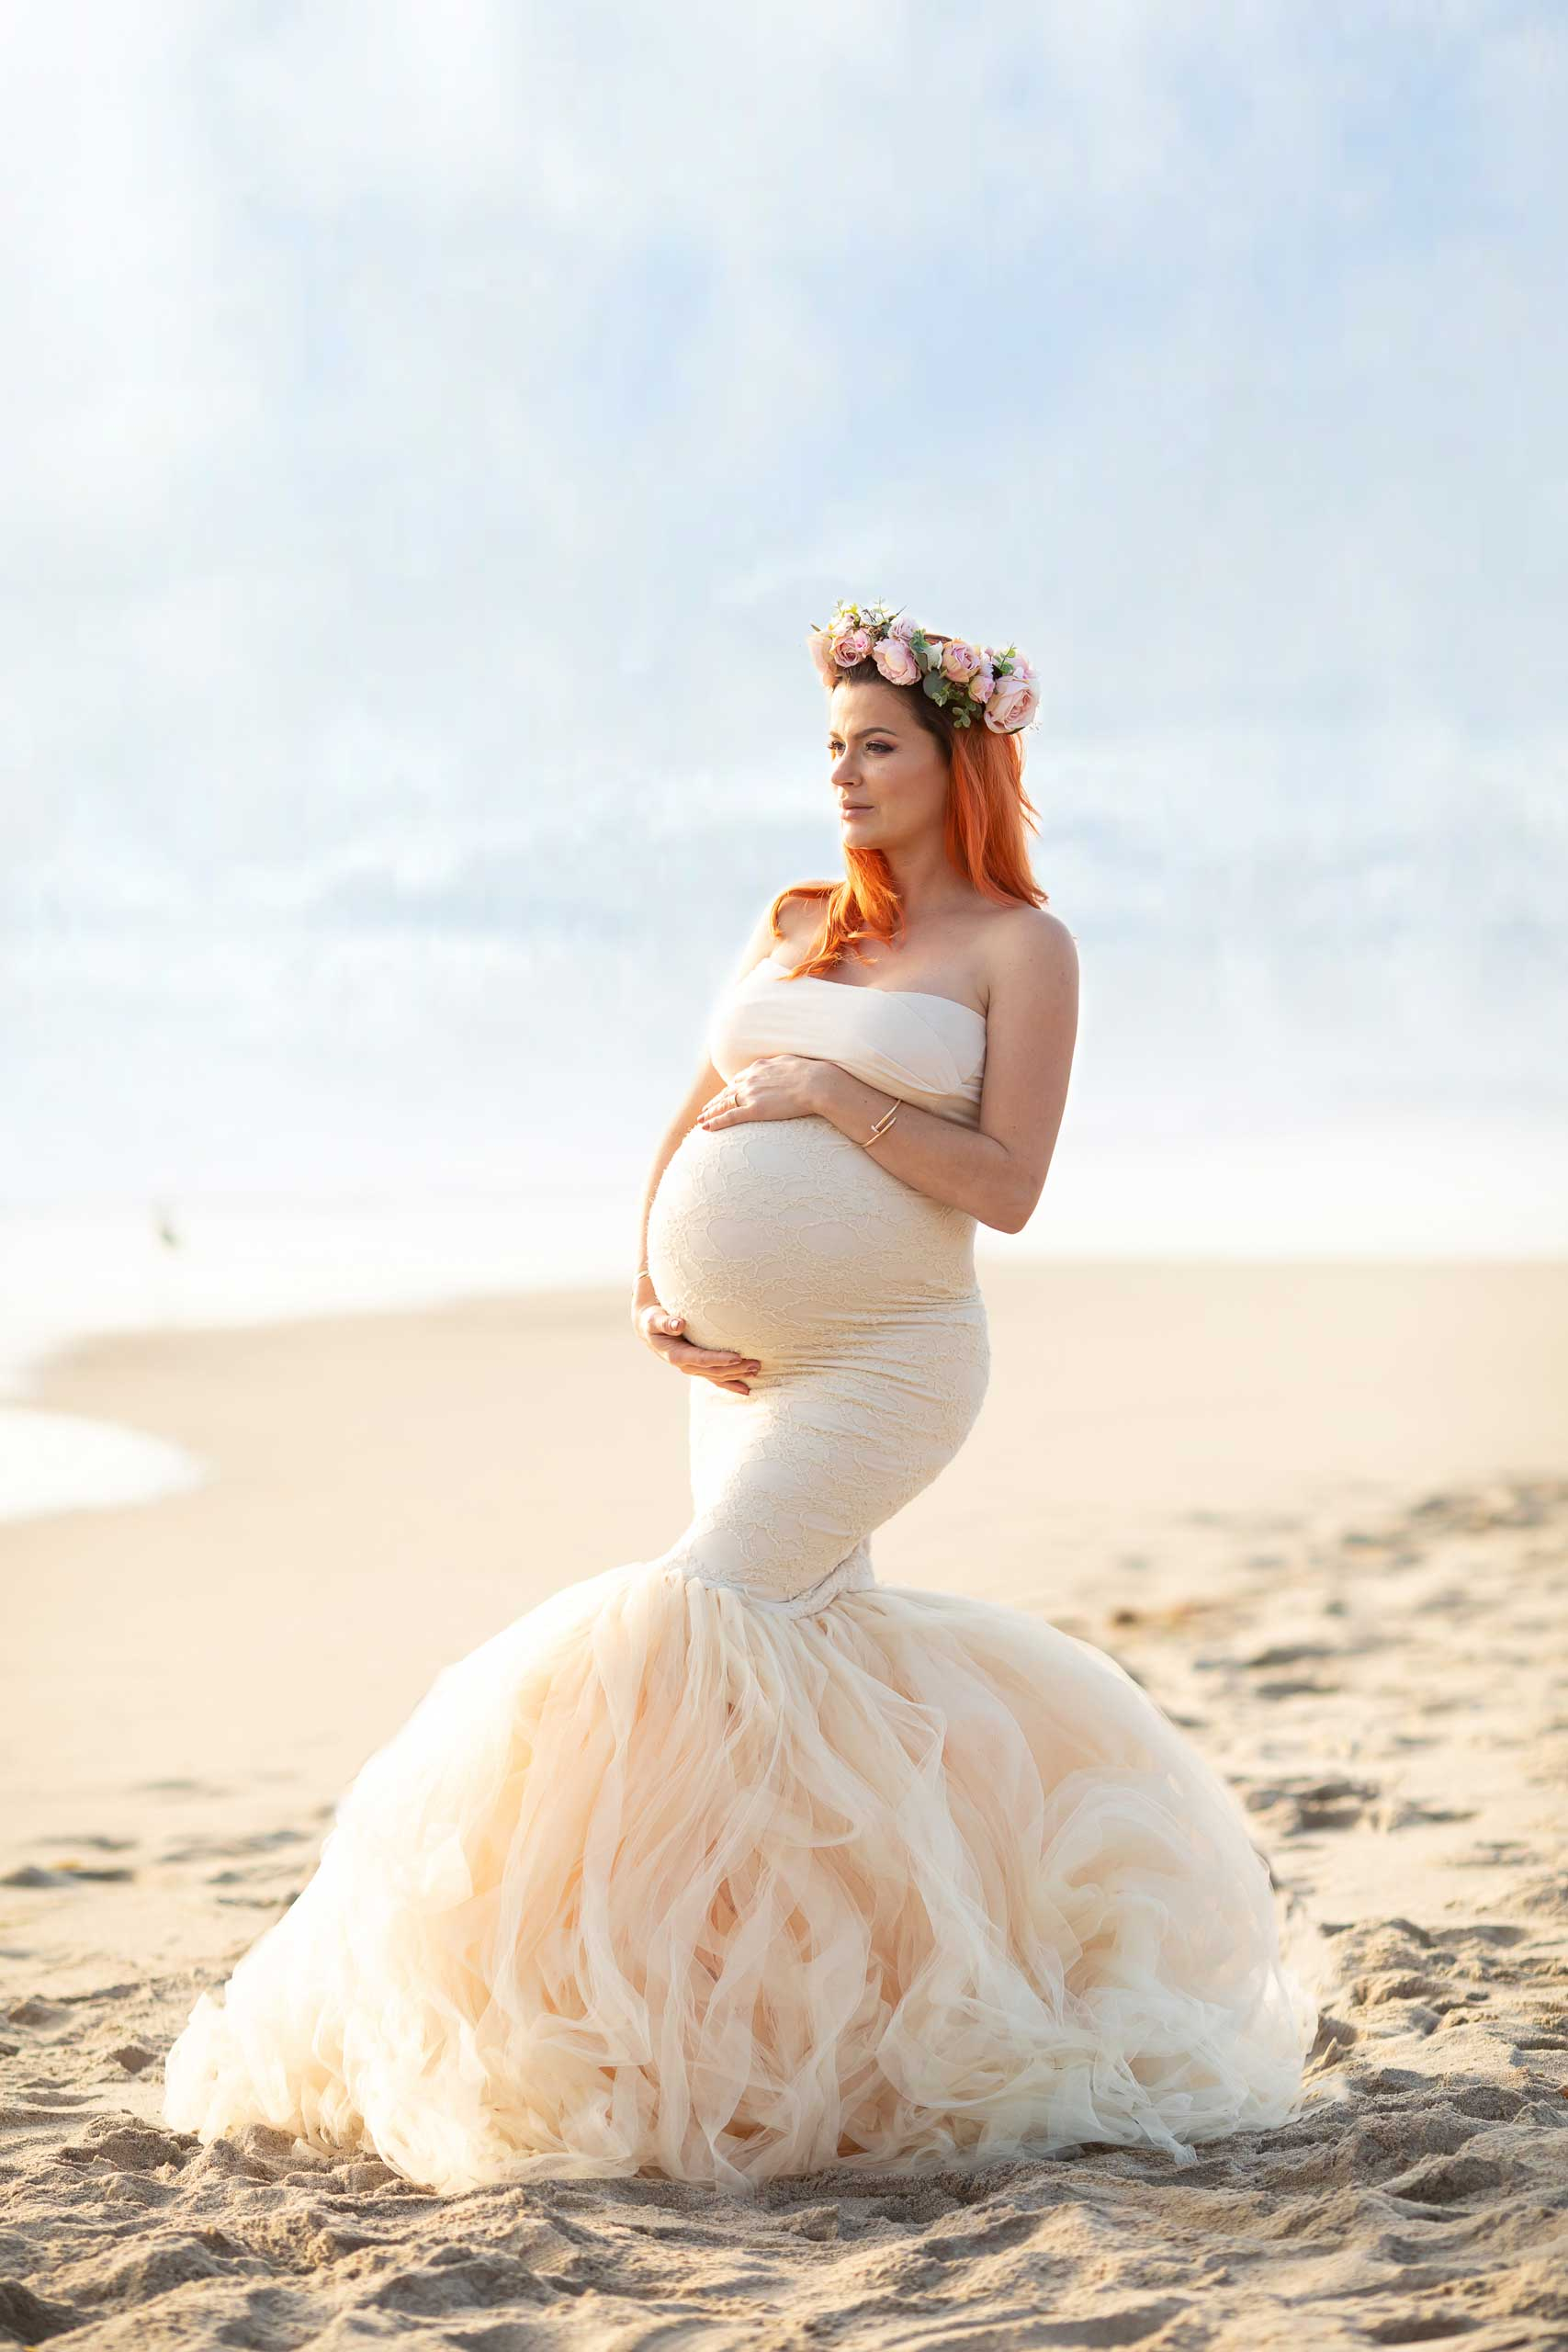 Maternity photos taken at the beach by Ramina Magid Photography in Malibu